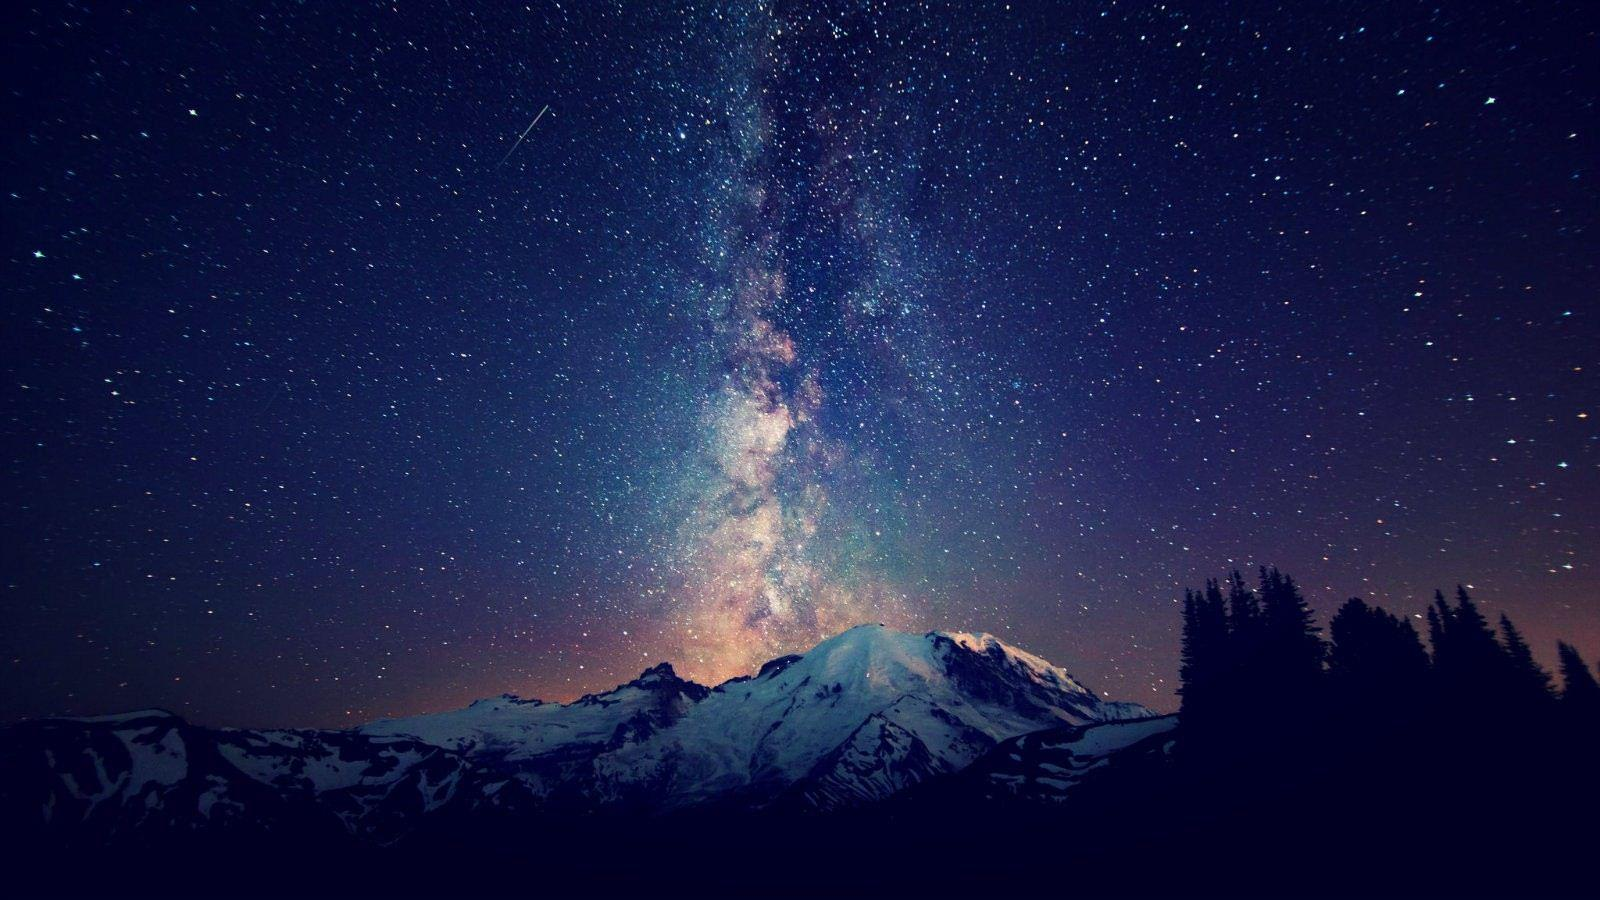 Milky Way Galaxy Backgrounds Wallpaper